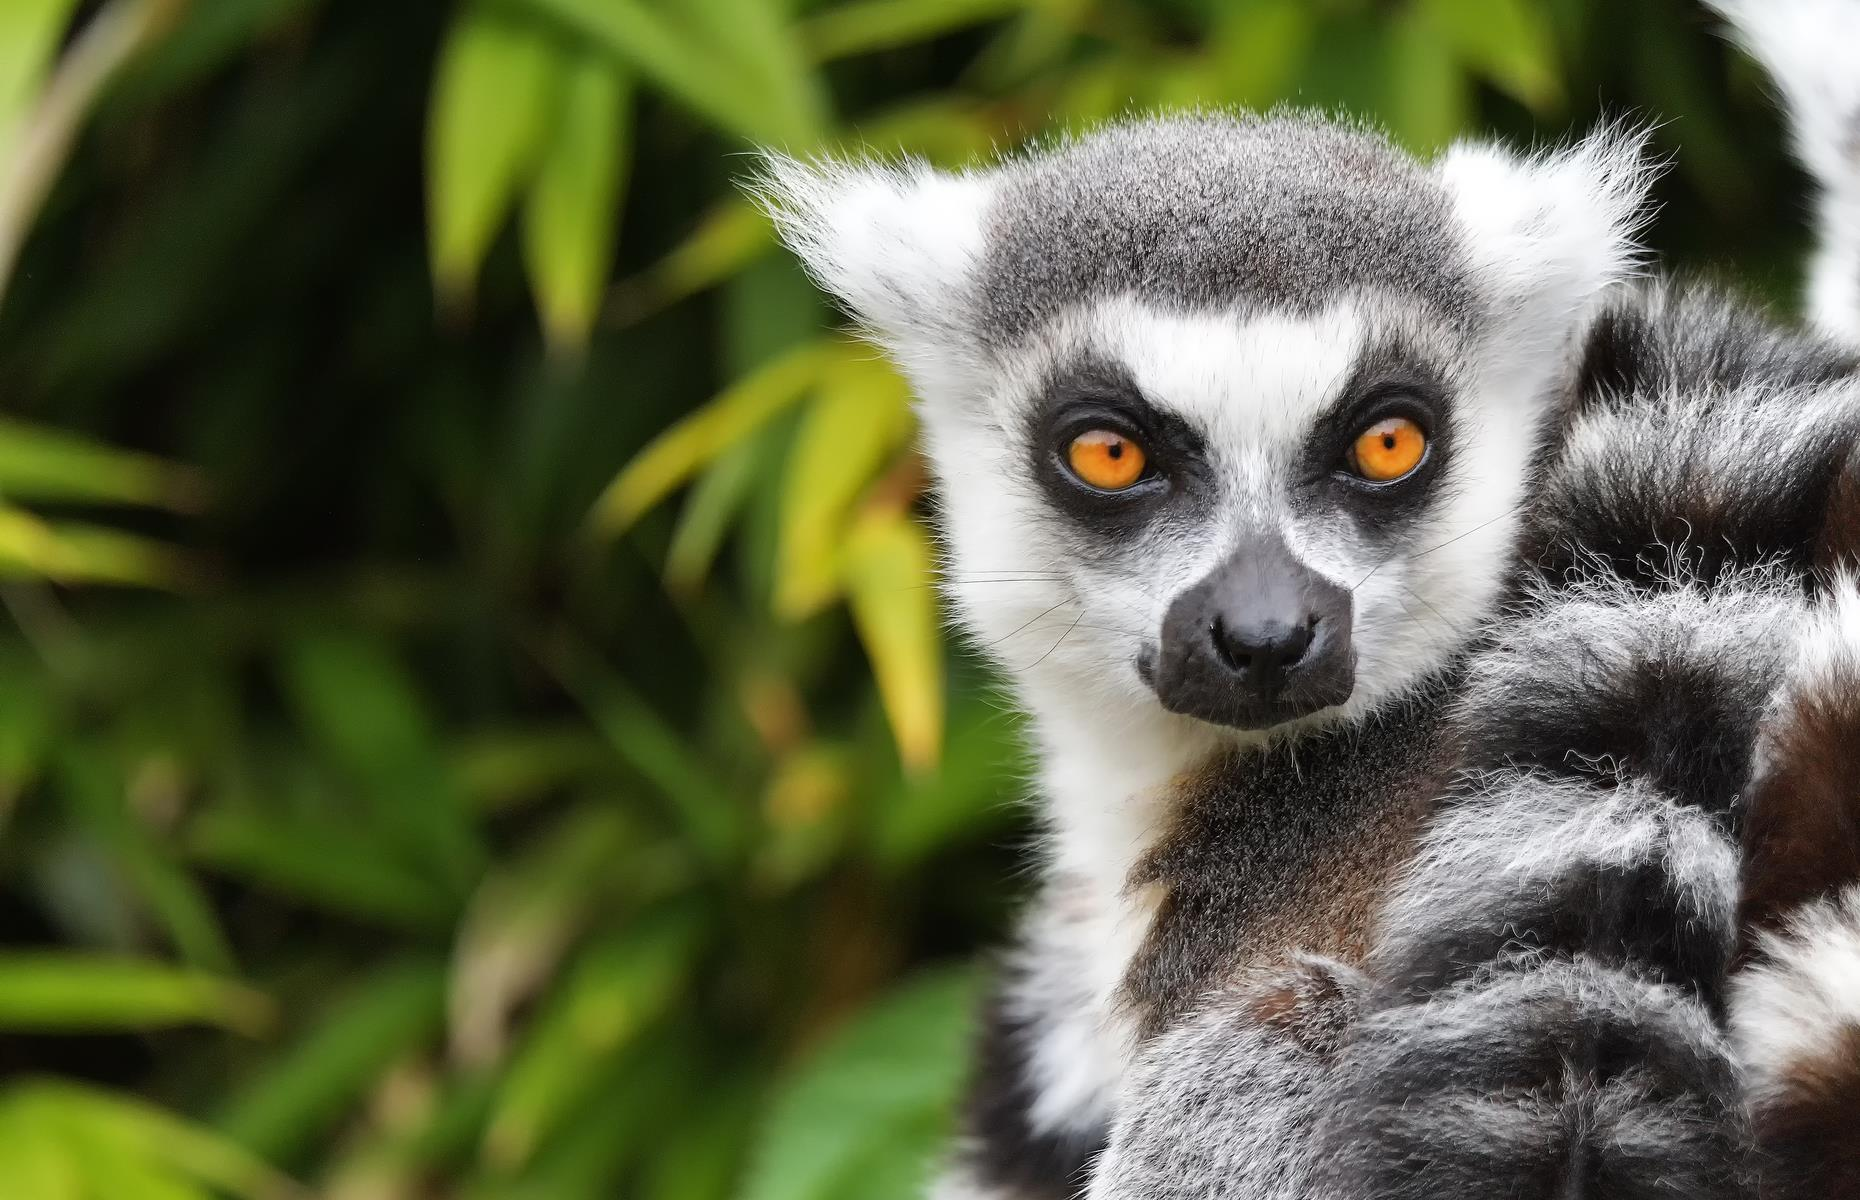 Slide 9 of 26: Lemurs may be native to Madagascar – there are more than50 different kinds – but today, 10 of these species are critically endangered, seven are endangered and 19 are considered vulnerable. Chameleons, geckos and snakes are also at risk of being captured by the wildlife trade.